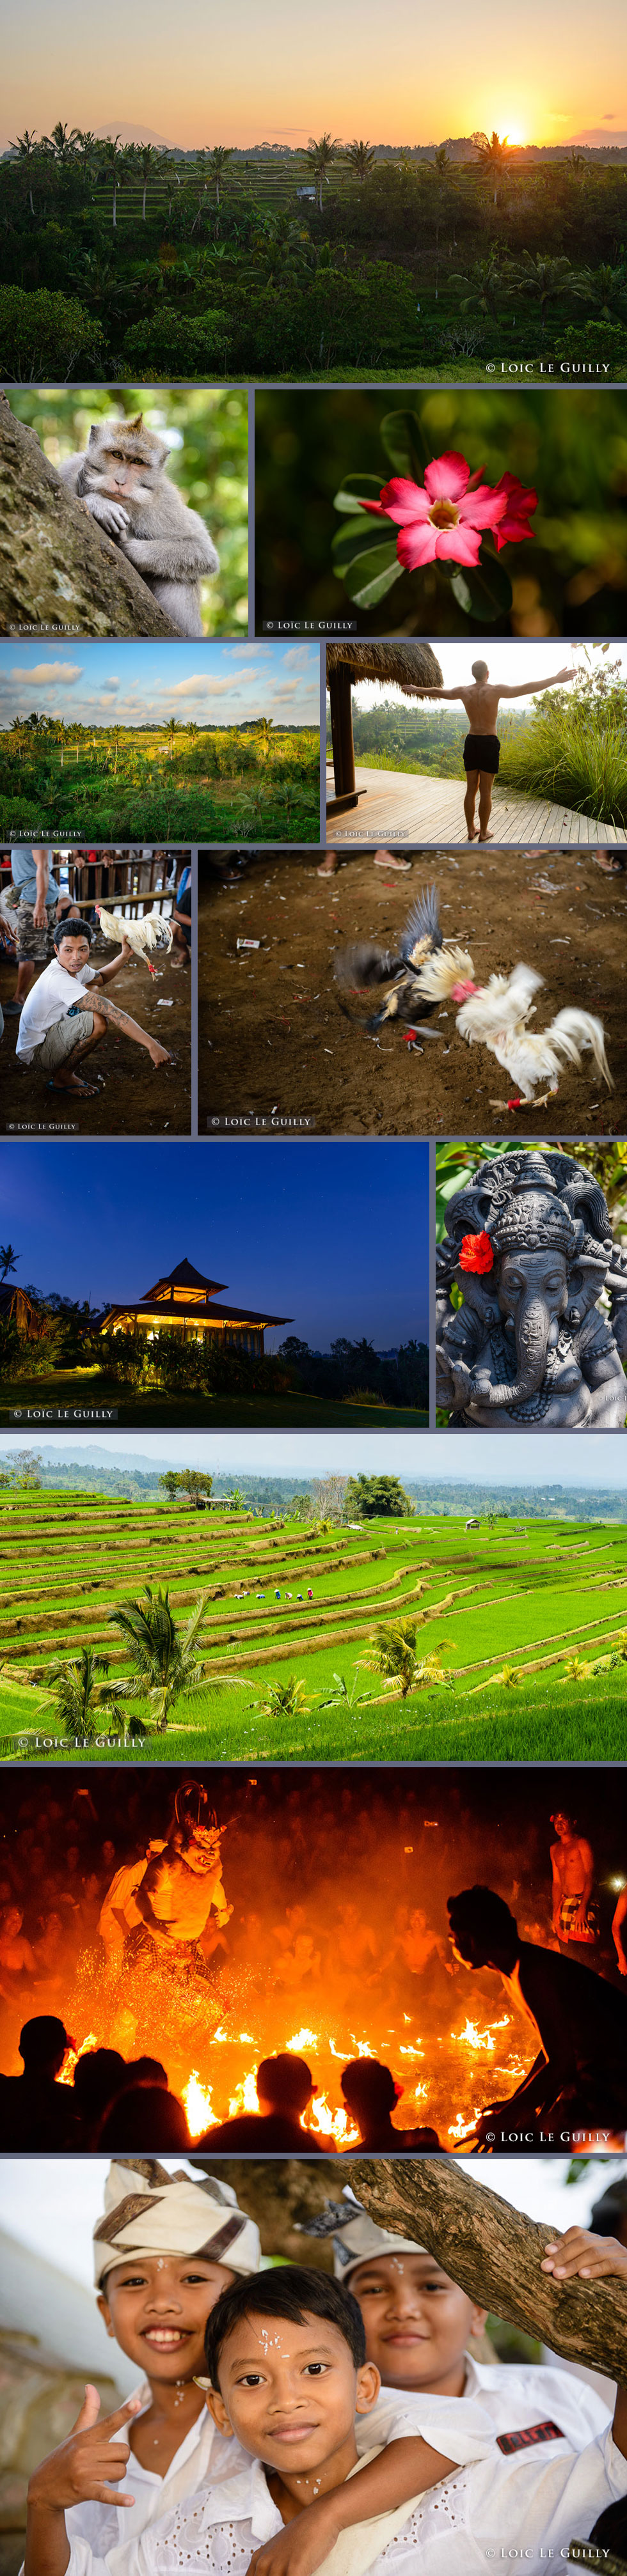 images of Bali